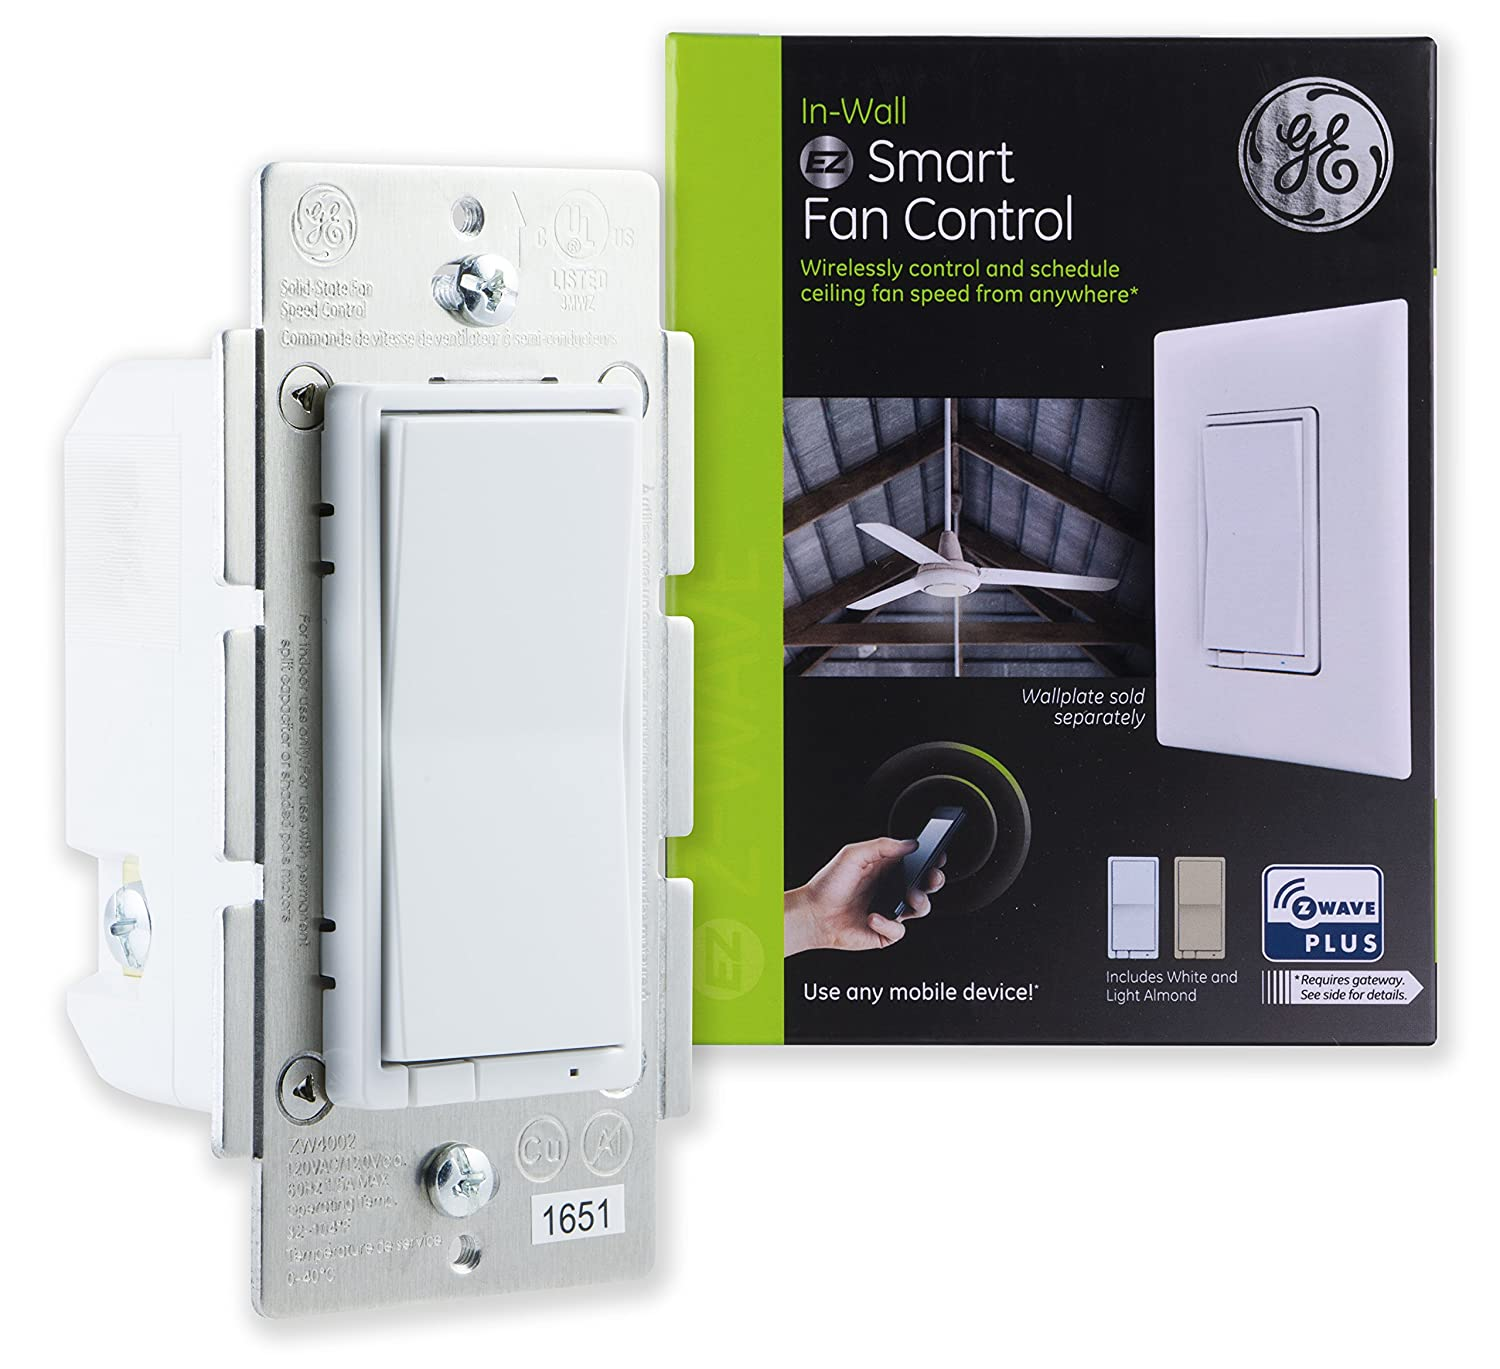 Ge Z Wave Plus Smart Fan Speed Control 3 In Wall Controls How To Install Ceiling And Light Switch On 3way Only Includes White Almond Paddles Zwave Hub Required Works With